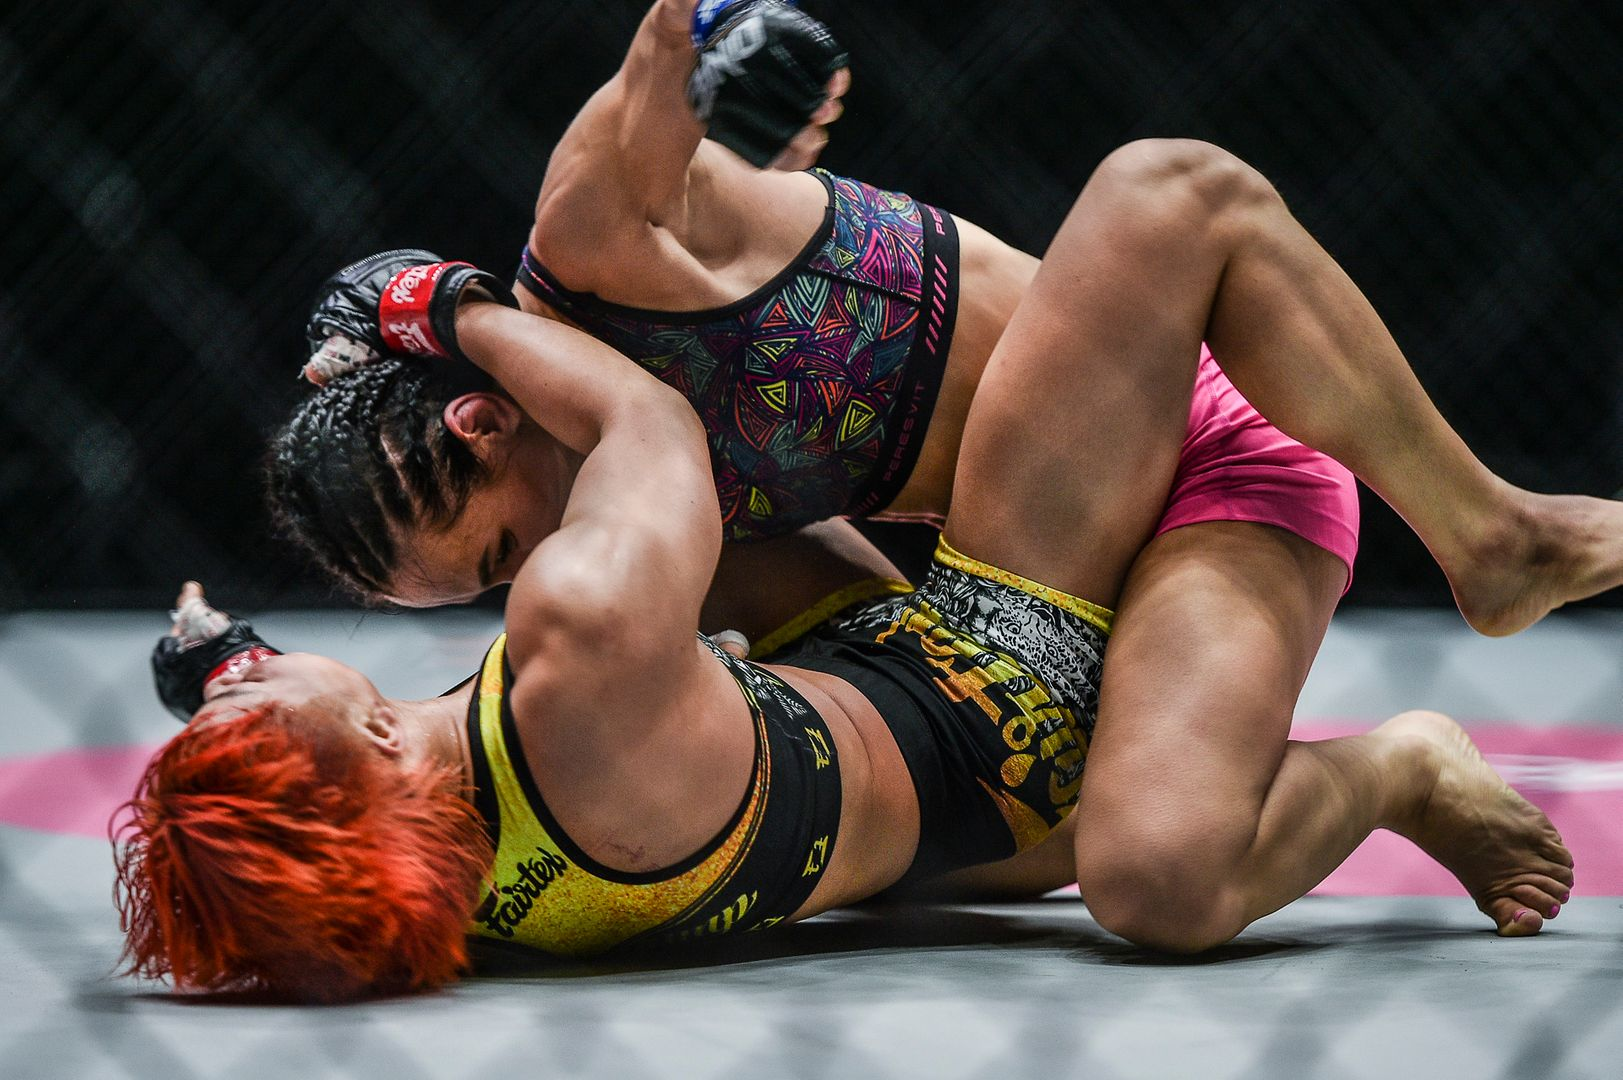 Photos from Stamp Fairtex and Alyona Rassohyna's MMA fight at ONE: UNBREAKABLE III on 5 February 2021